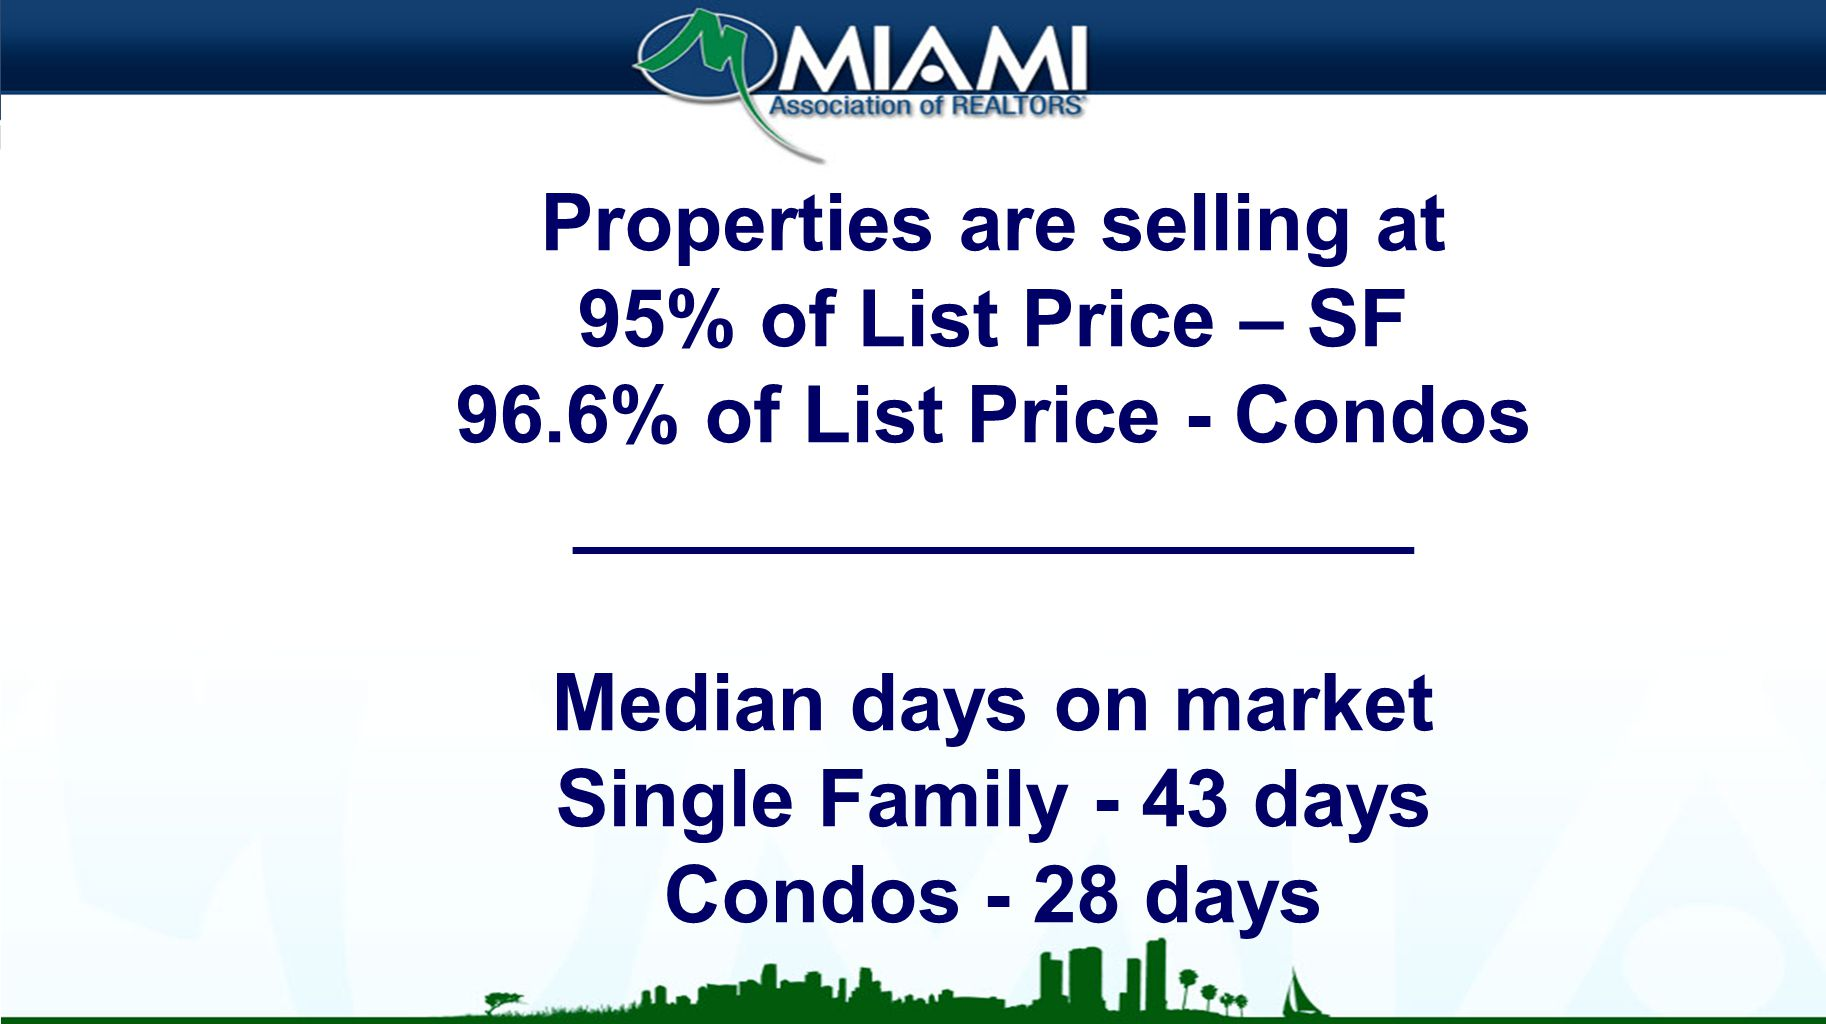 Properties are selling at 95% of List Price – SF 96.6% of List Price - Condos ___________________ Median days on market Single Family - 43 days Condos